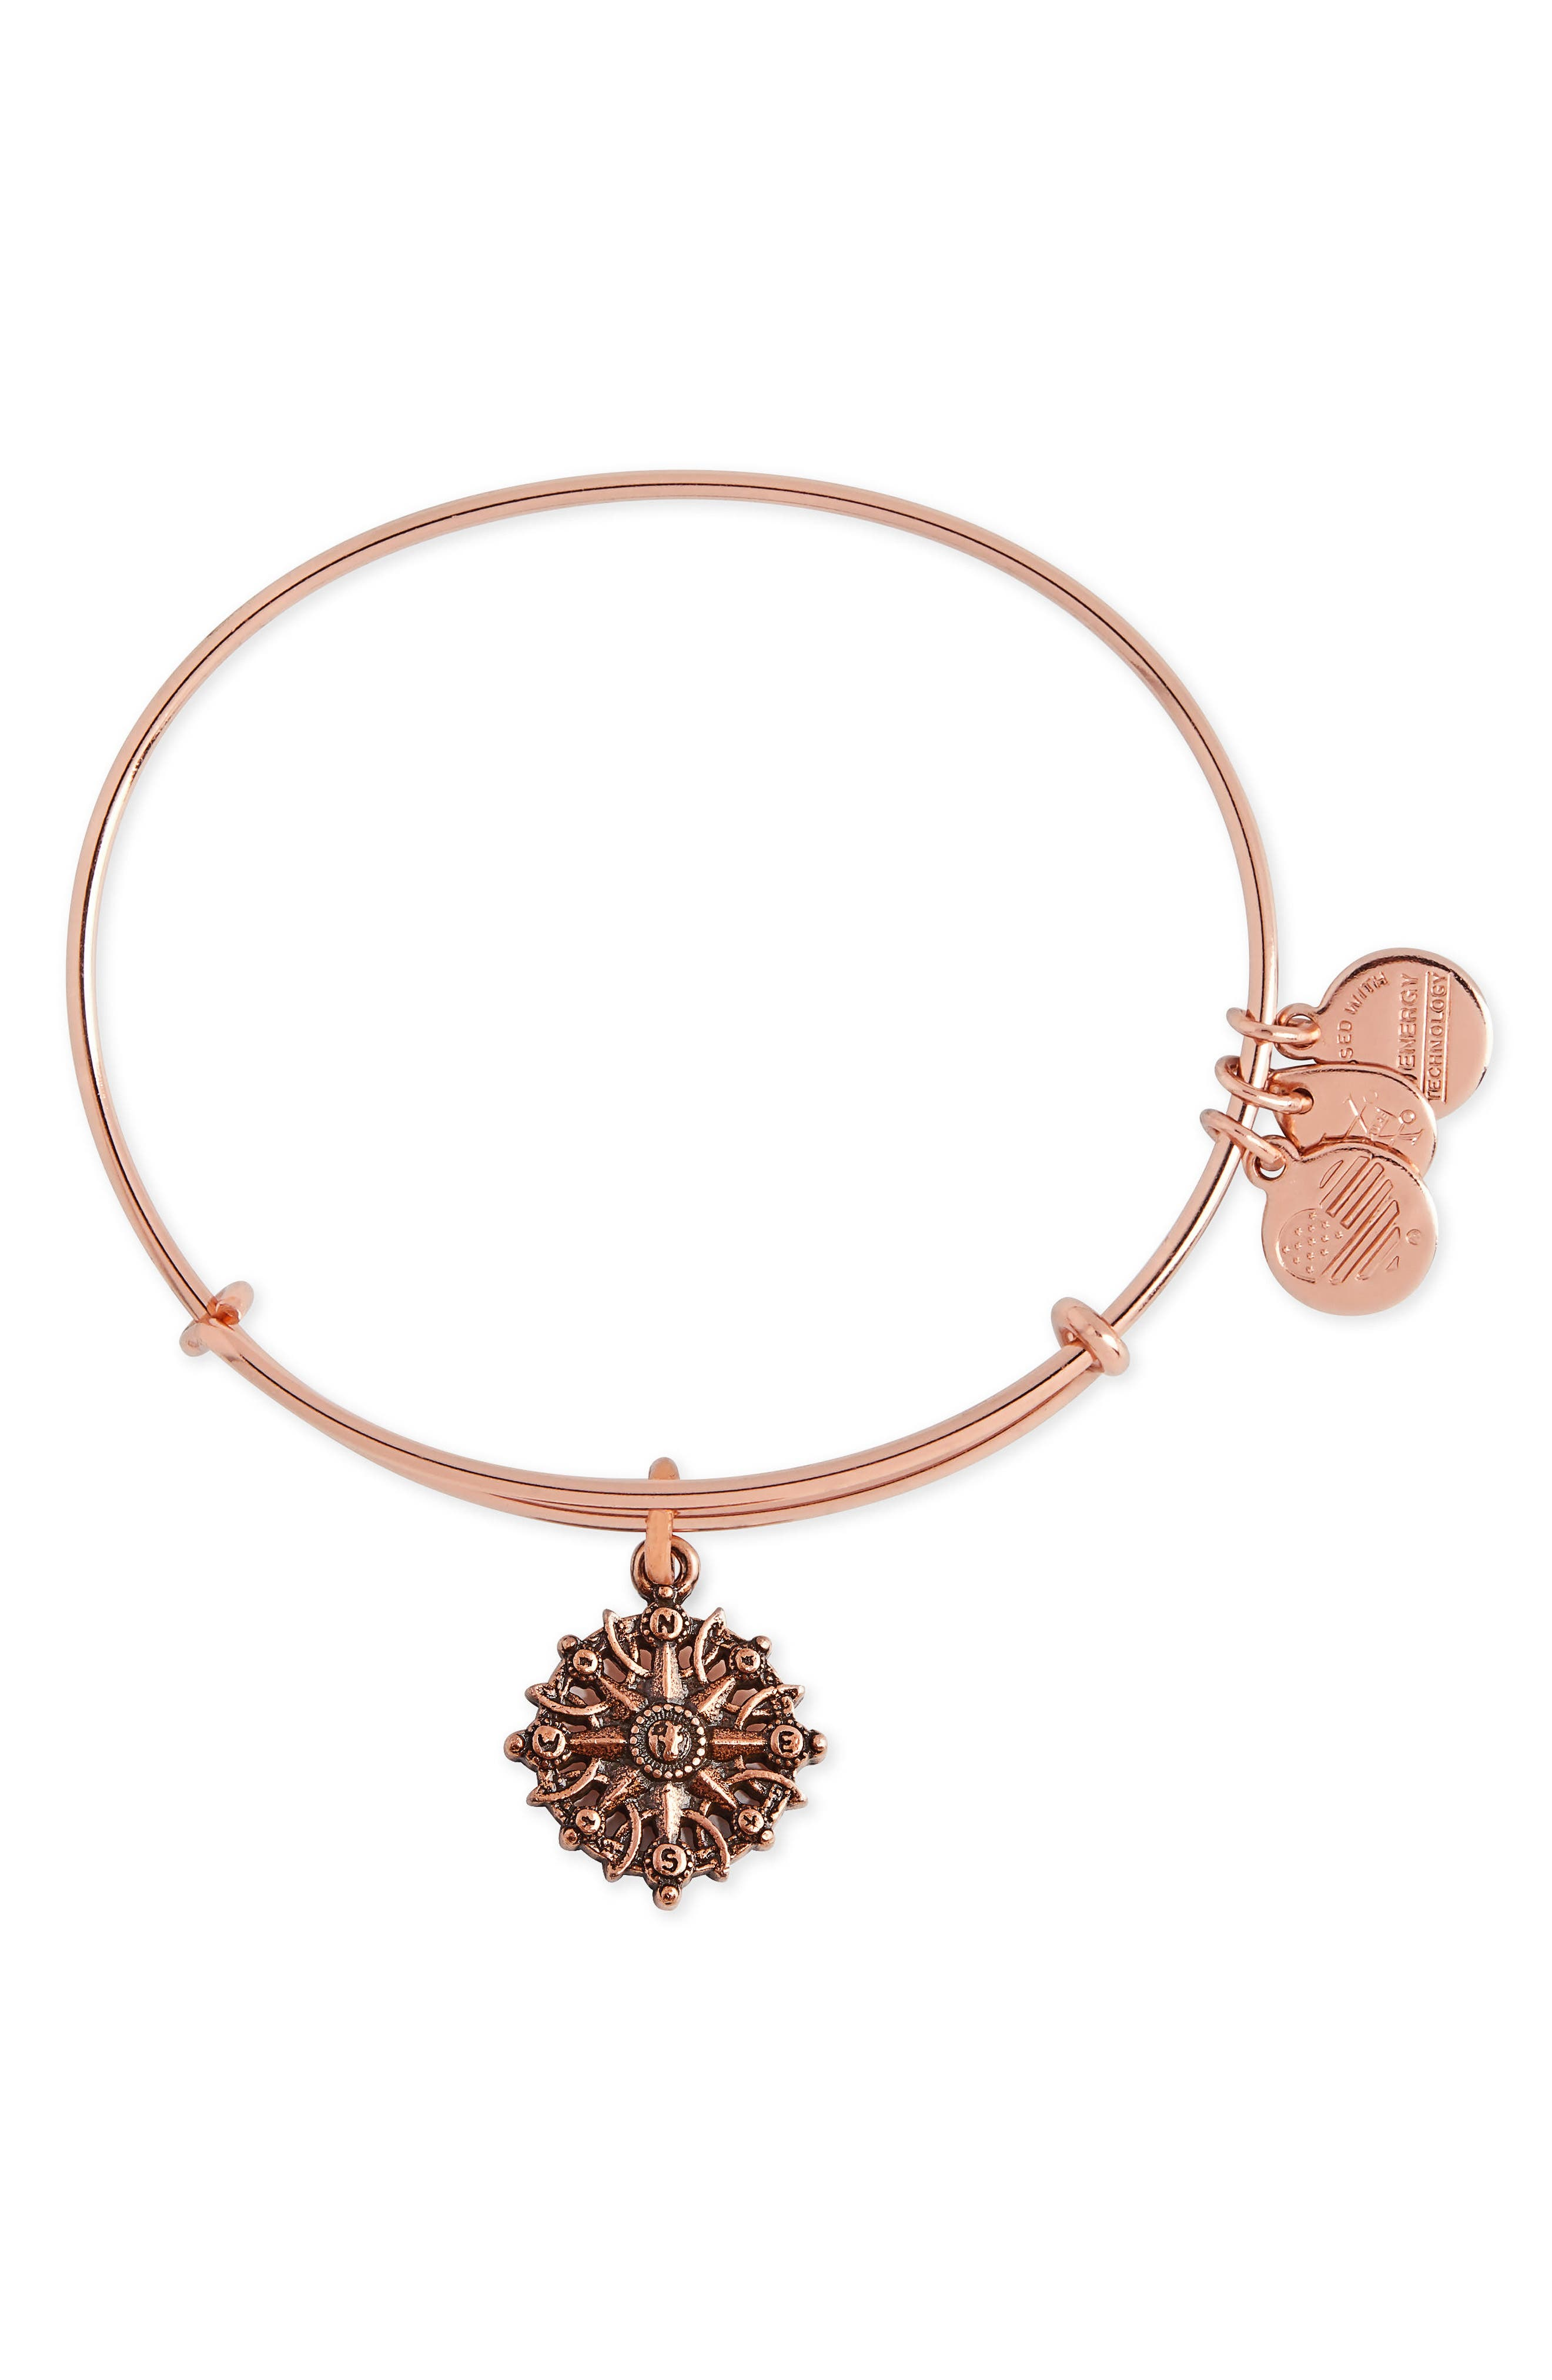 Compass Adjustable Wire Bangle,                             Main thumbnail 1, color,                             Rose Gold